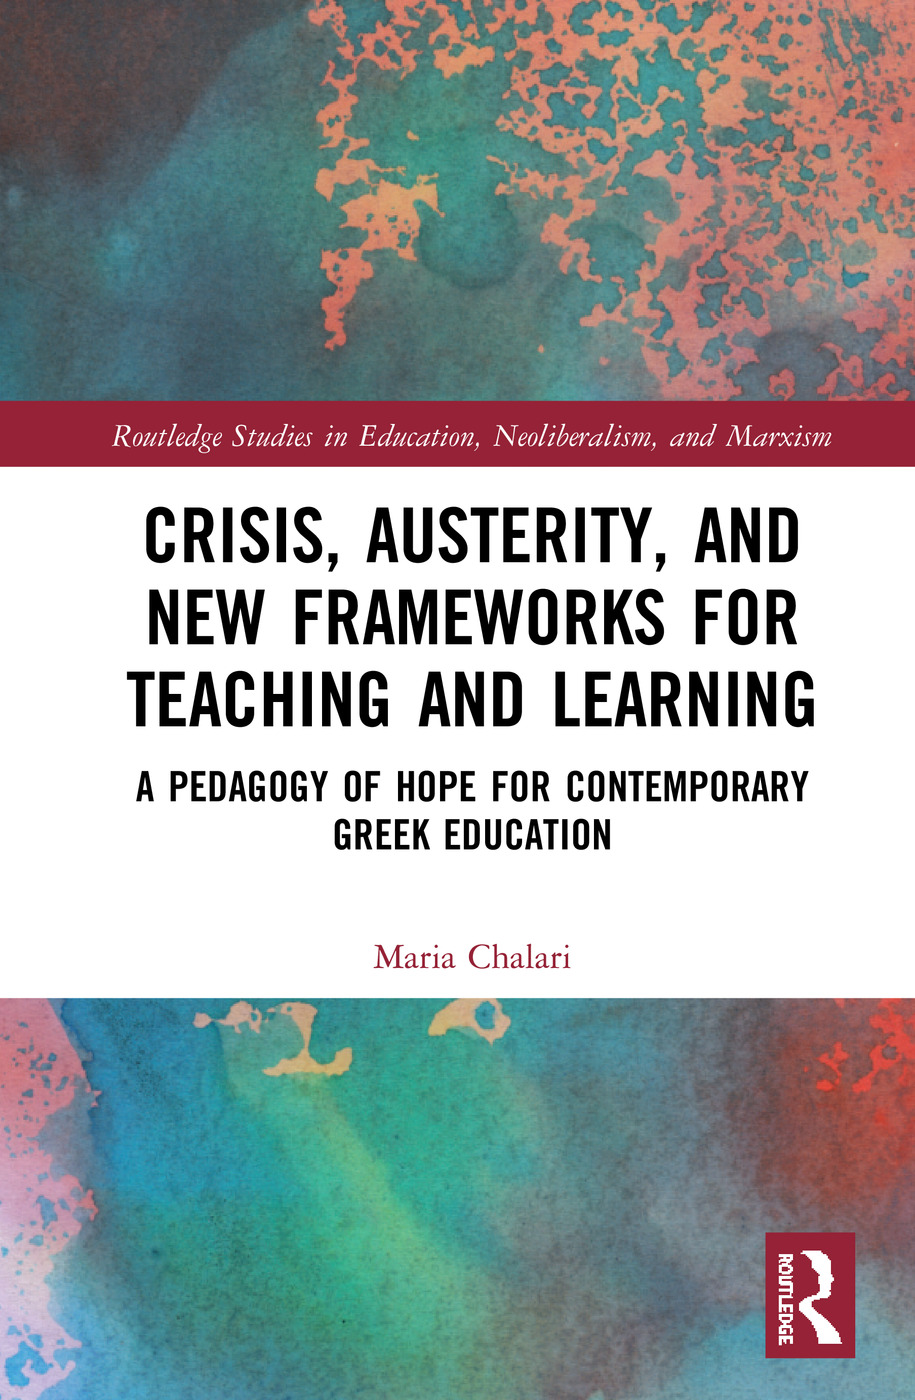 Crisis, Austerity, and New Frameworks for Teaching and Learning: A Pedagogy of Hope for Contemporary Greek Education book cover